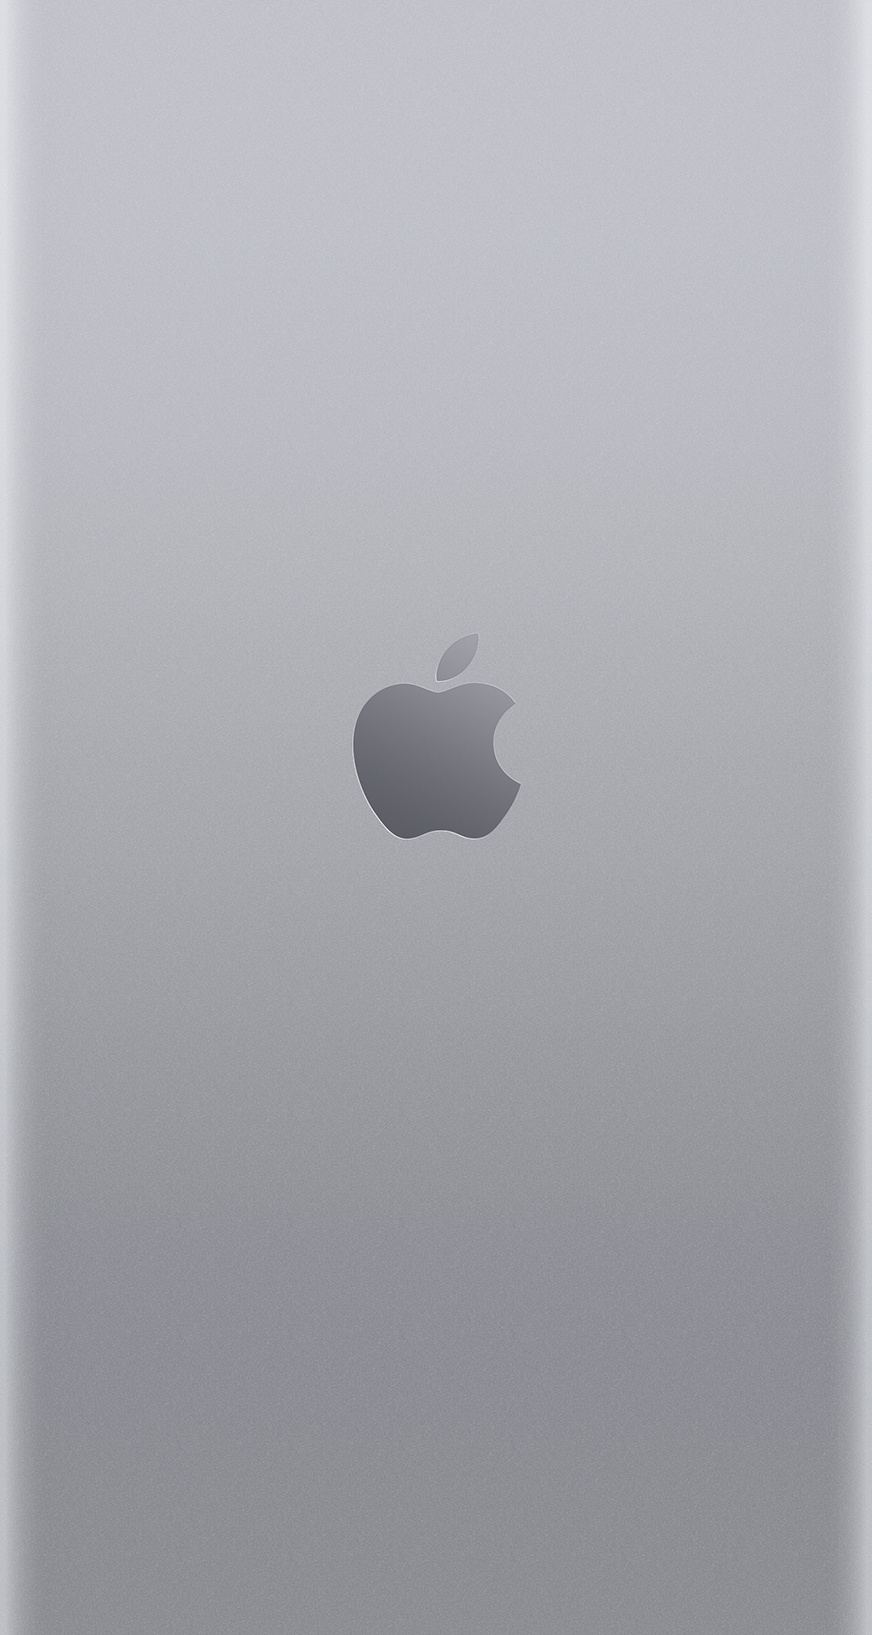 Apple logo wallpapers for iphone 6 - Iphone 6 space wallpaper download ...